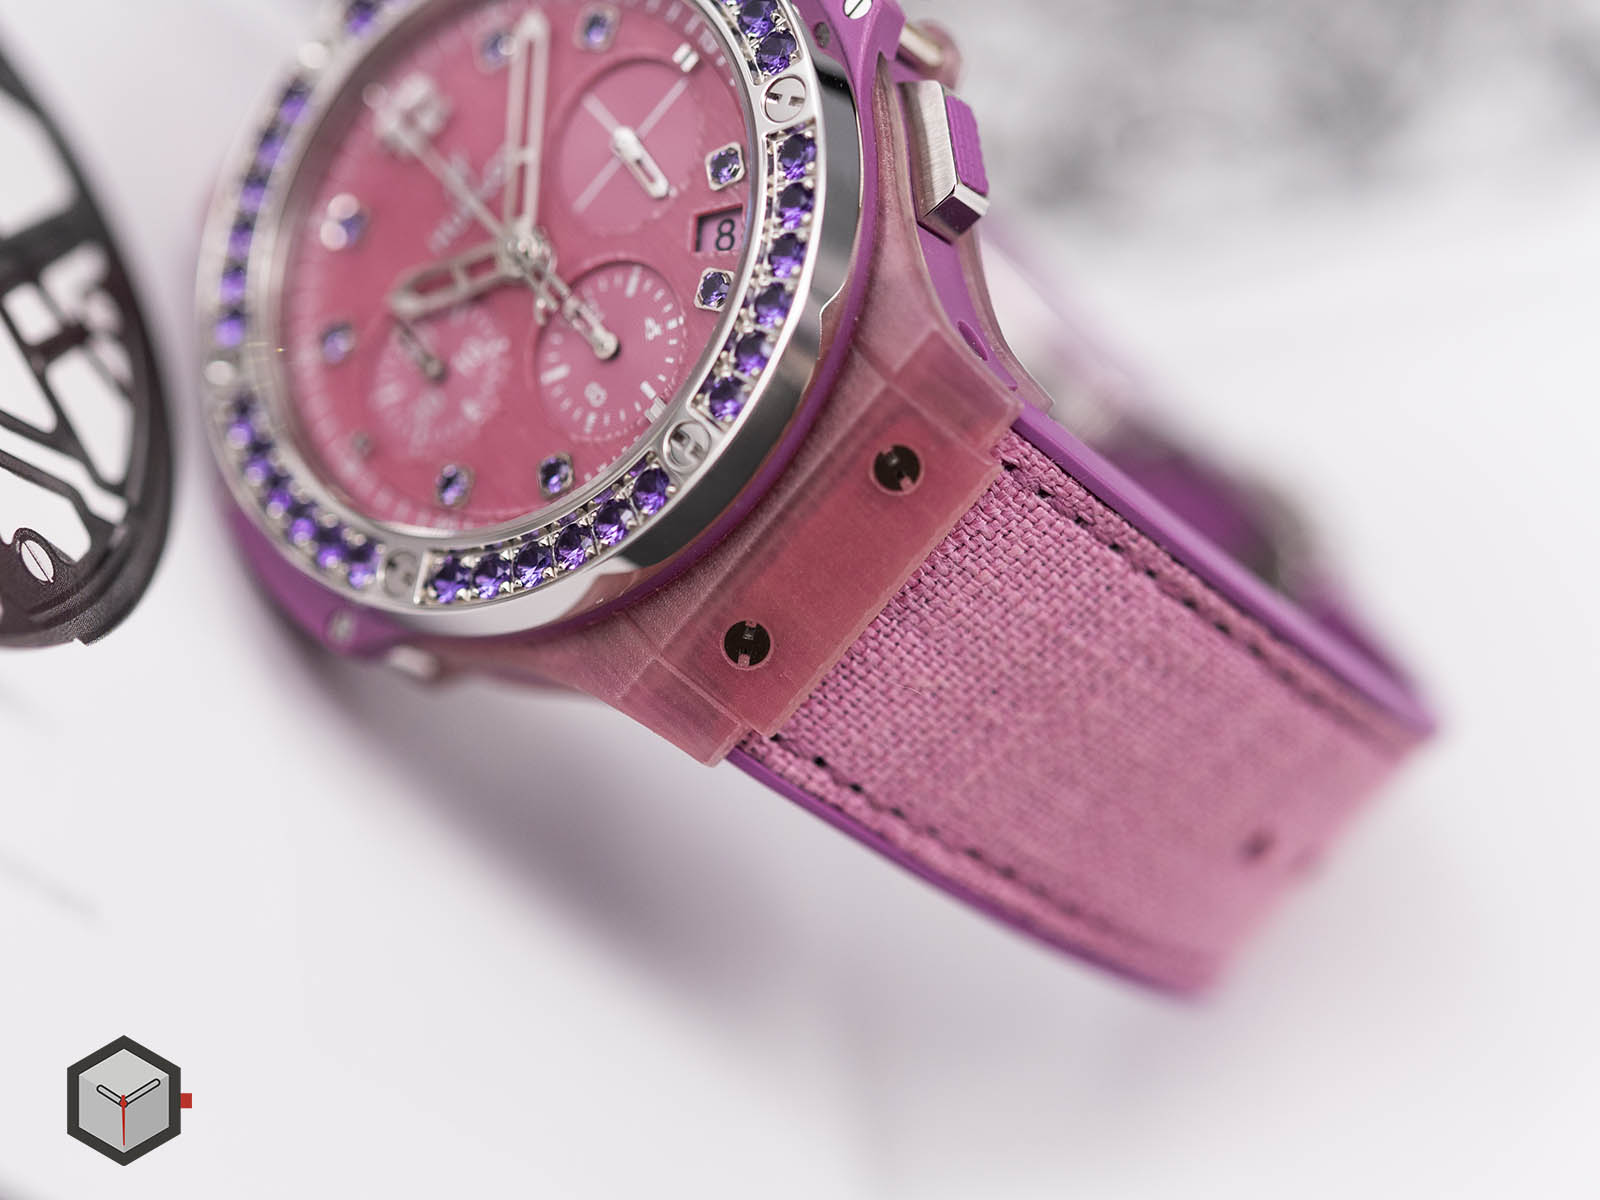 341-xp-2770-nr-1205-hublot-big-bang-purple-linen-4.jpg